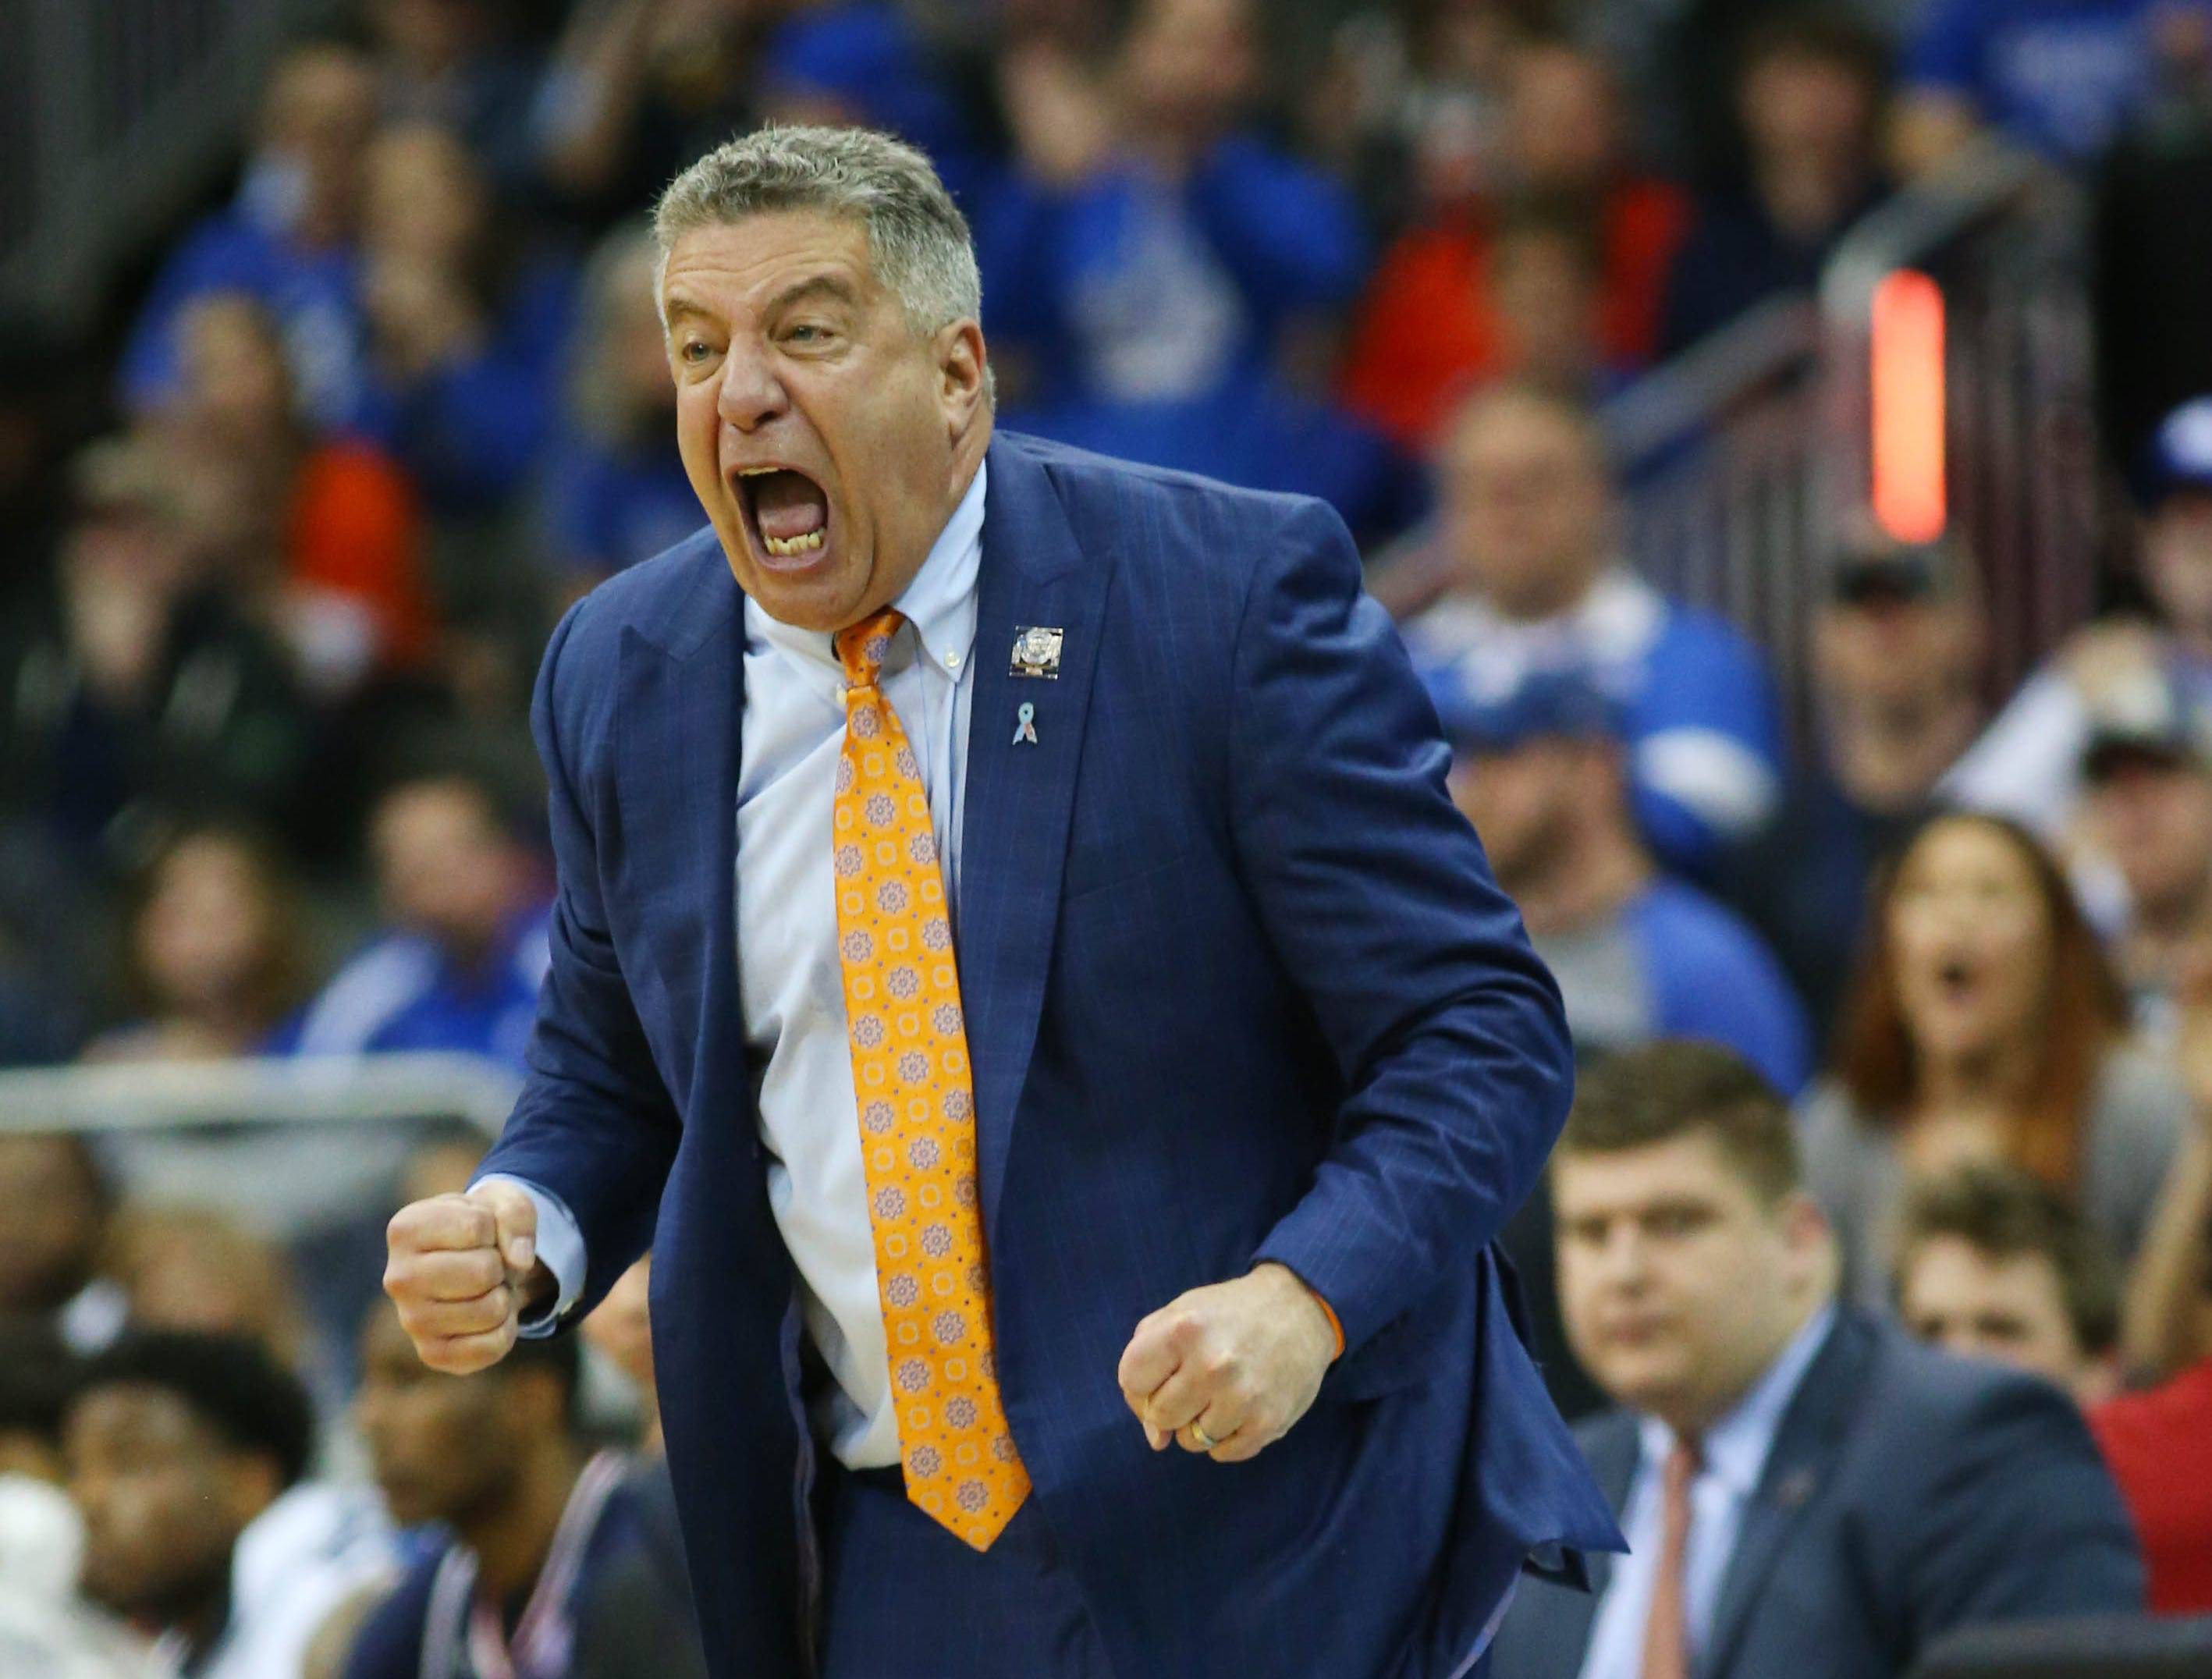 Mar 31, 2019; Kansas City, MO, United States; Auburn Tigers head coach Bruce Pearl reacts against the Kentucky Wildcats during the second half in the championship game of the midwest regional of the 2019 NCAA Tournament at Sprint Center. Mandatory Credit: Jay Biggerstaff-USA TODAY Sports